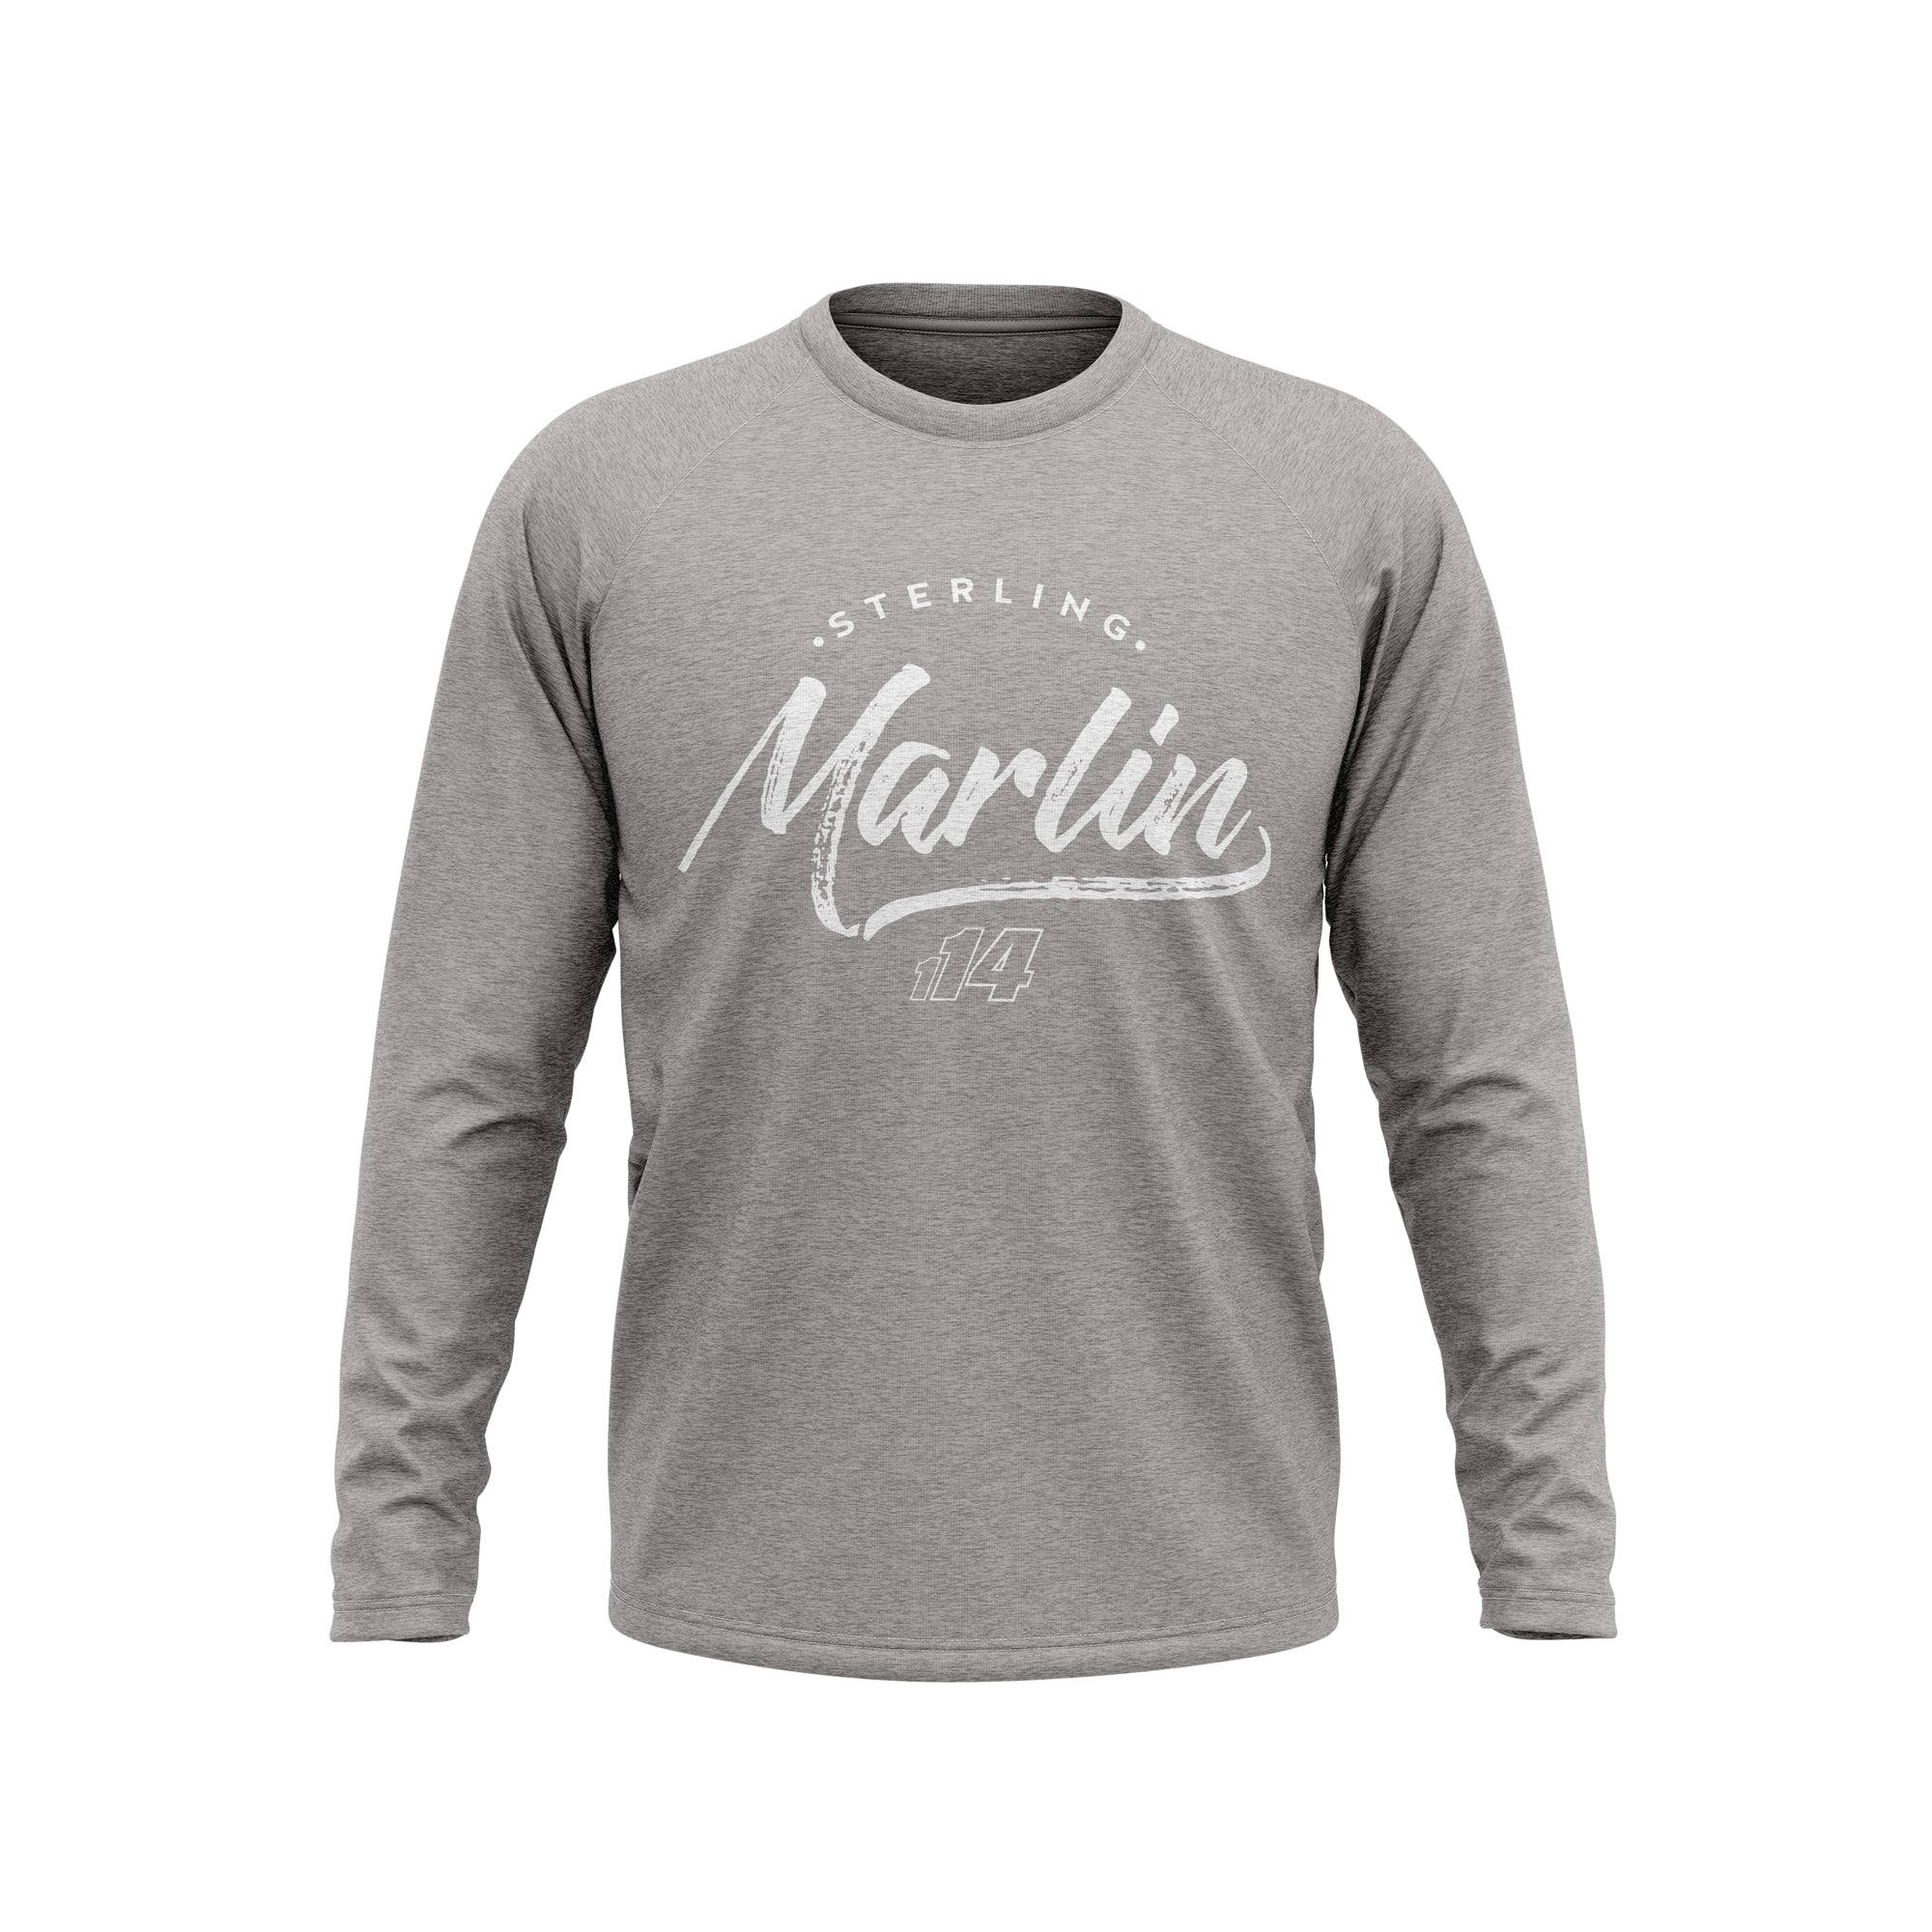 Rustic Long Sleeve Shirt [Light Heathered Gray]